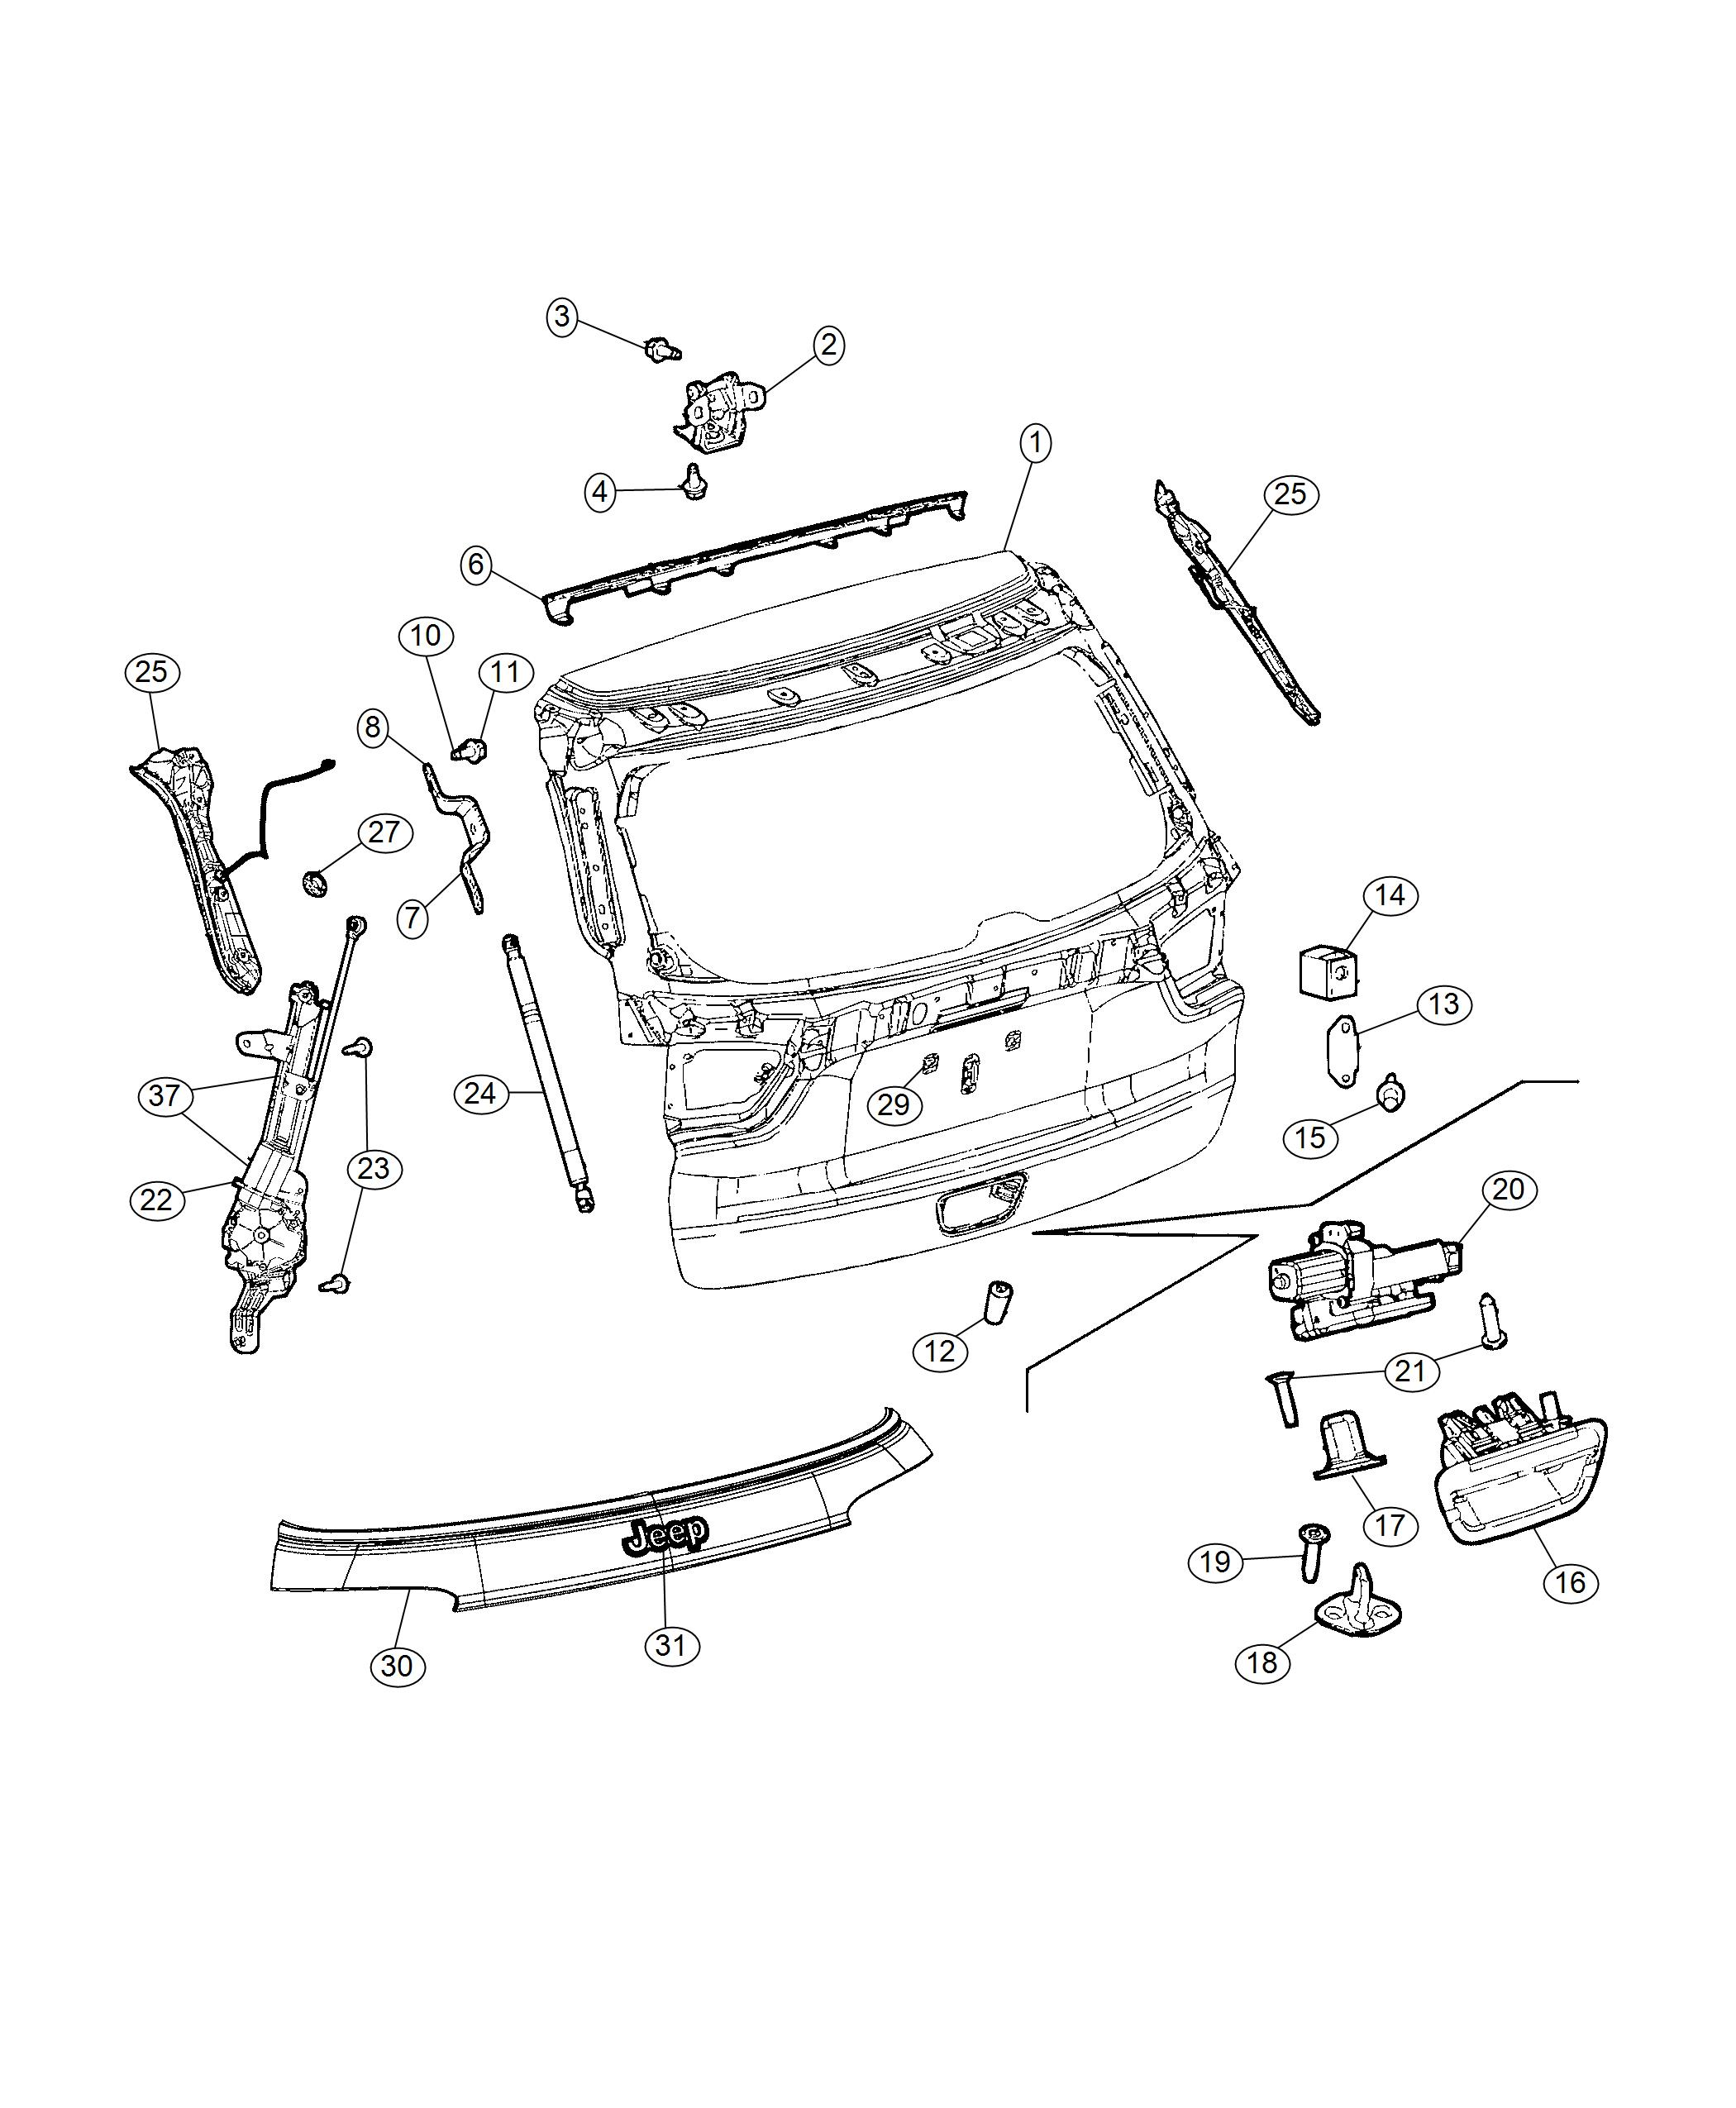 Wiring Diagram Jeep Compass 2018